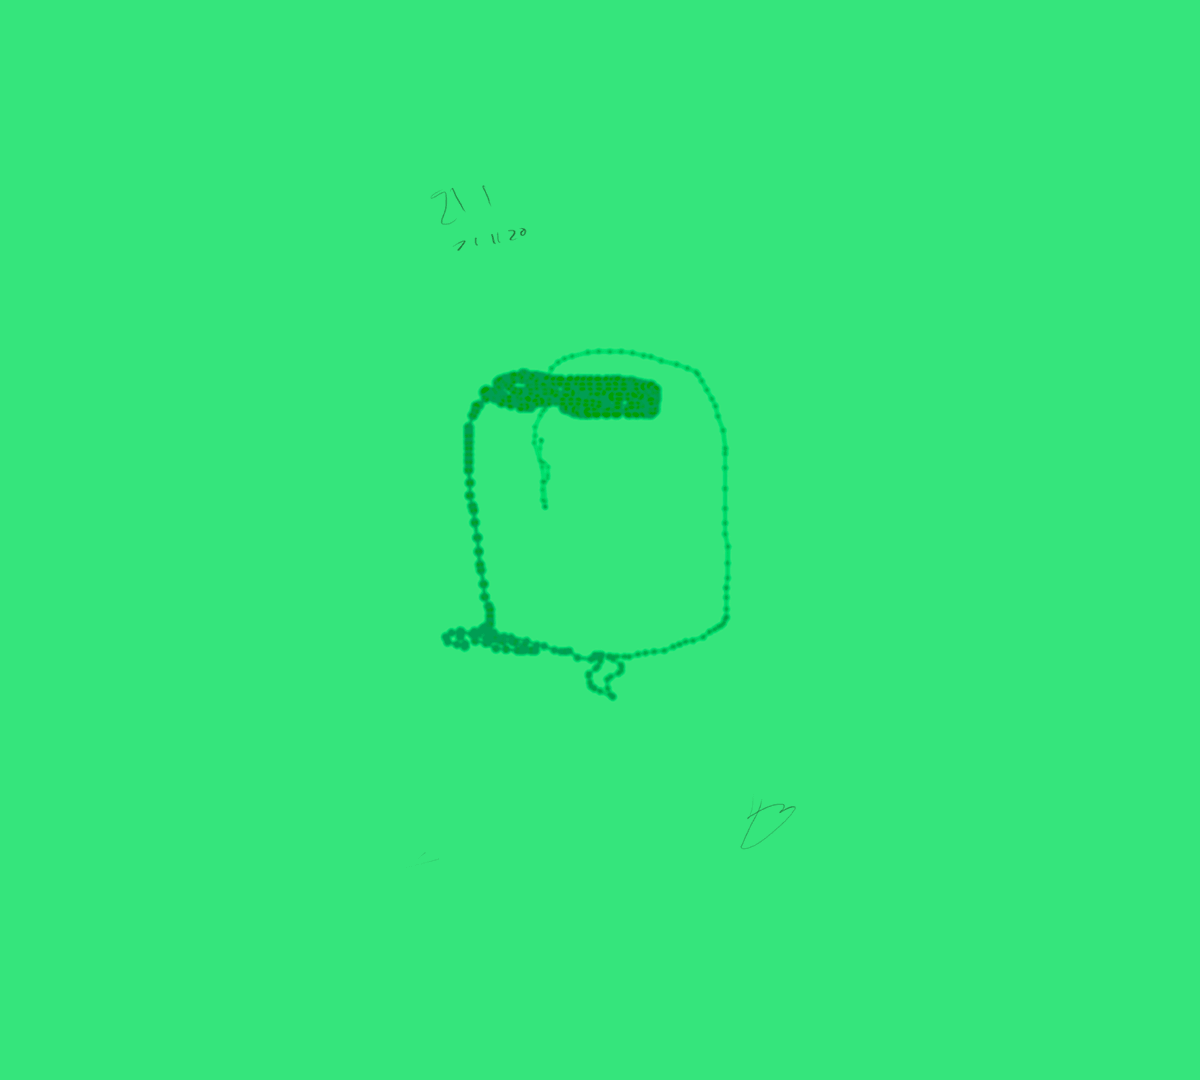 Felt tip browser drawing in optimistic green on a green background.